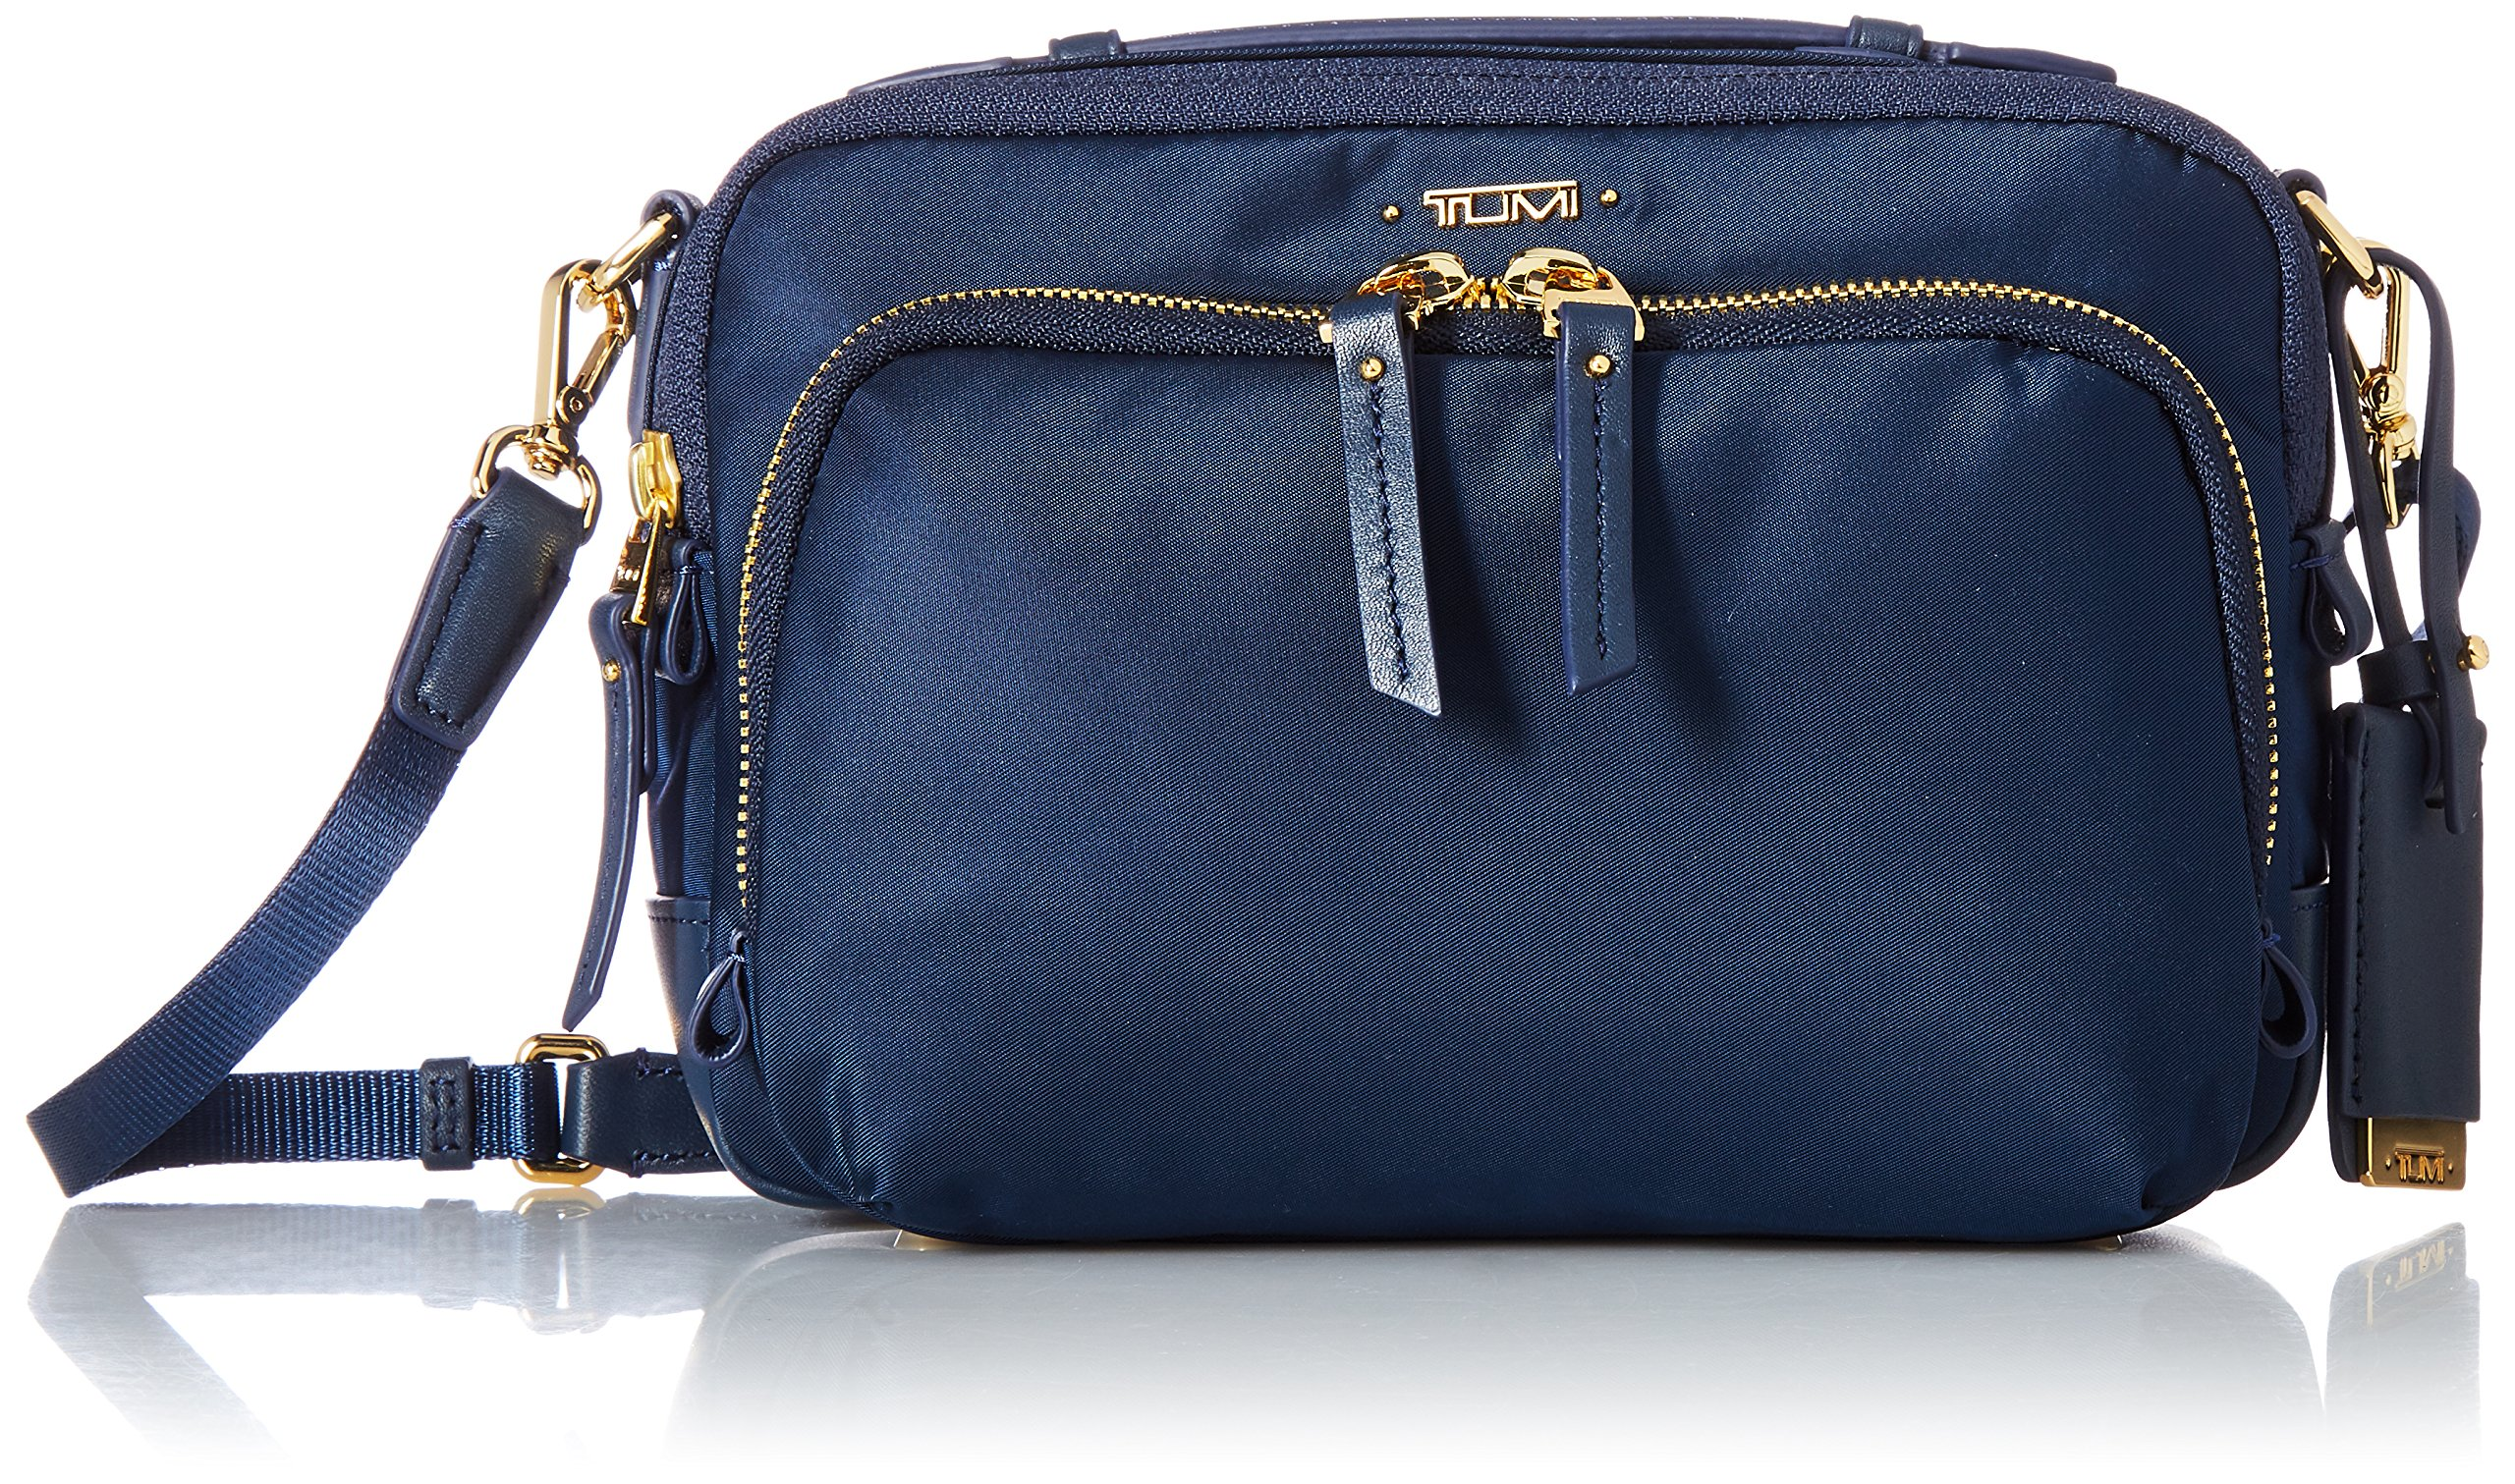 Tumi Women's Voyageur Luanda Flight Travel Cross-Body Bag, Ocean Blue, One Size